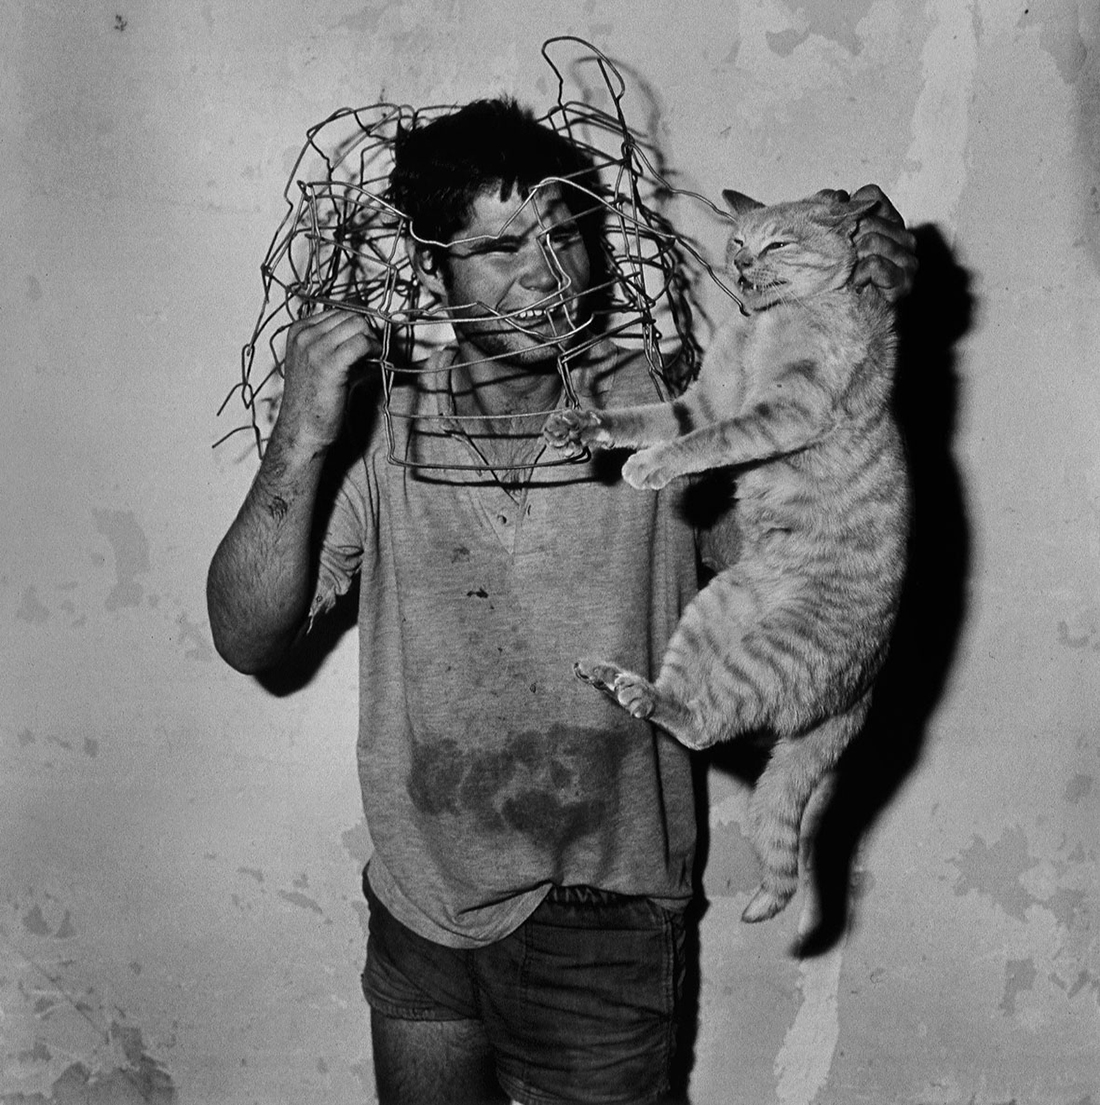 Cat catcher, 1998, Roger Ballen